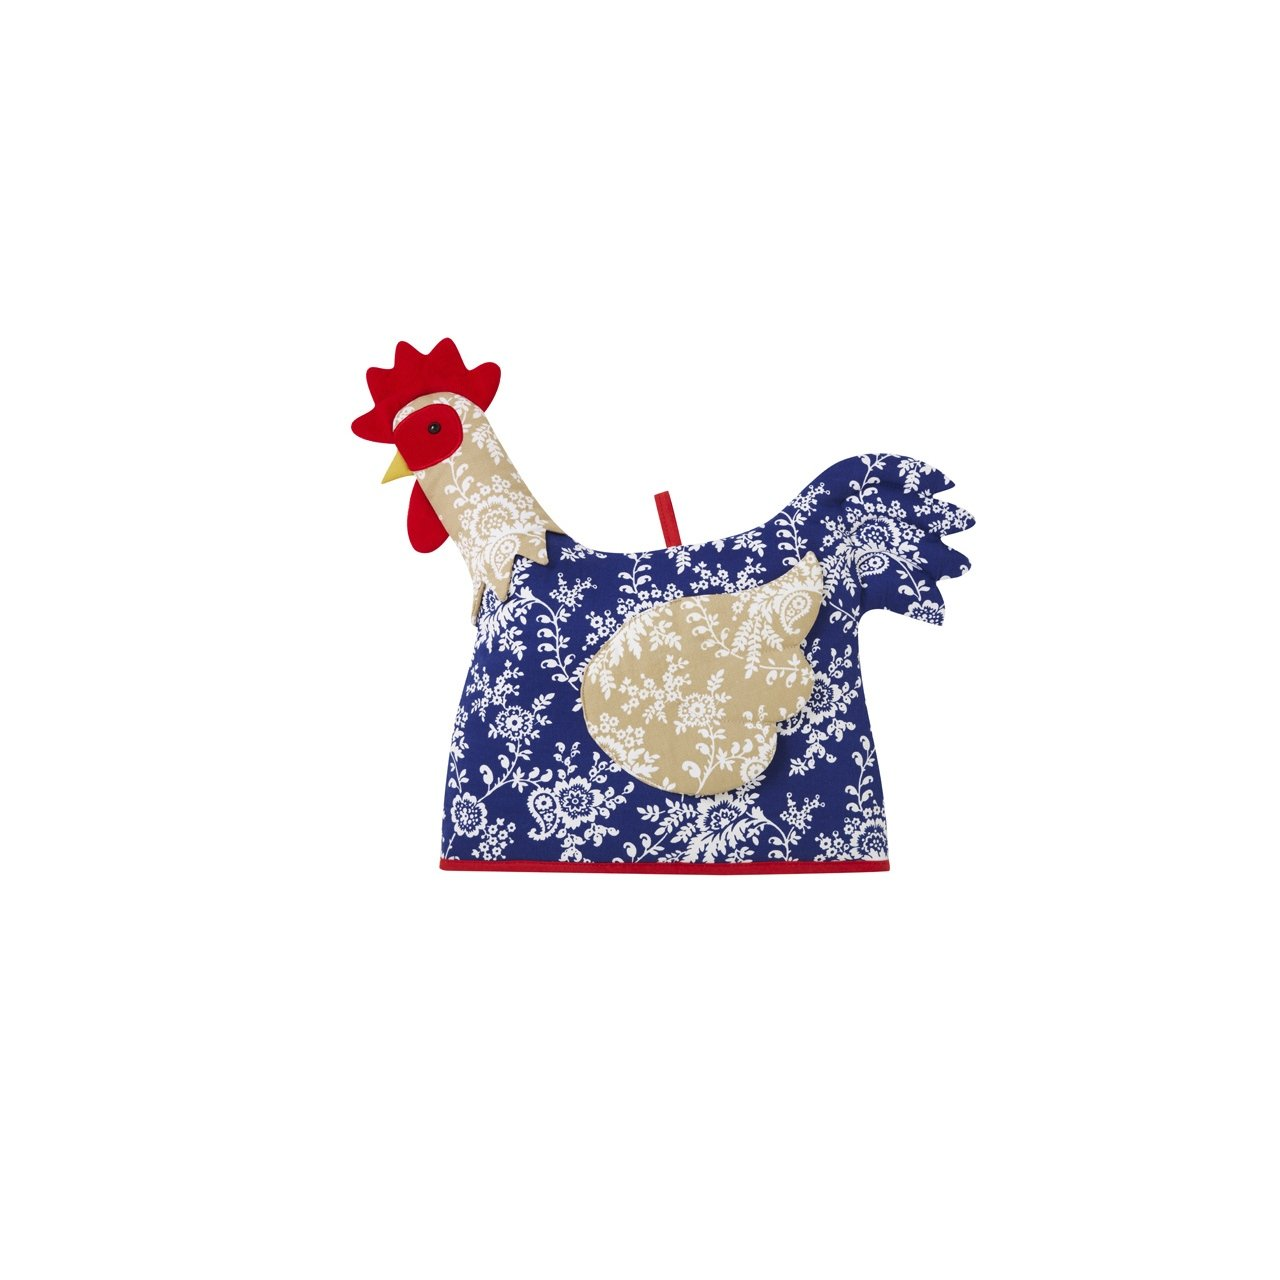 Ulster Weavers Chicken Shaped Decorative Tea Cosy 7CHI0412